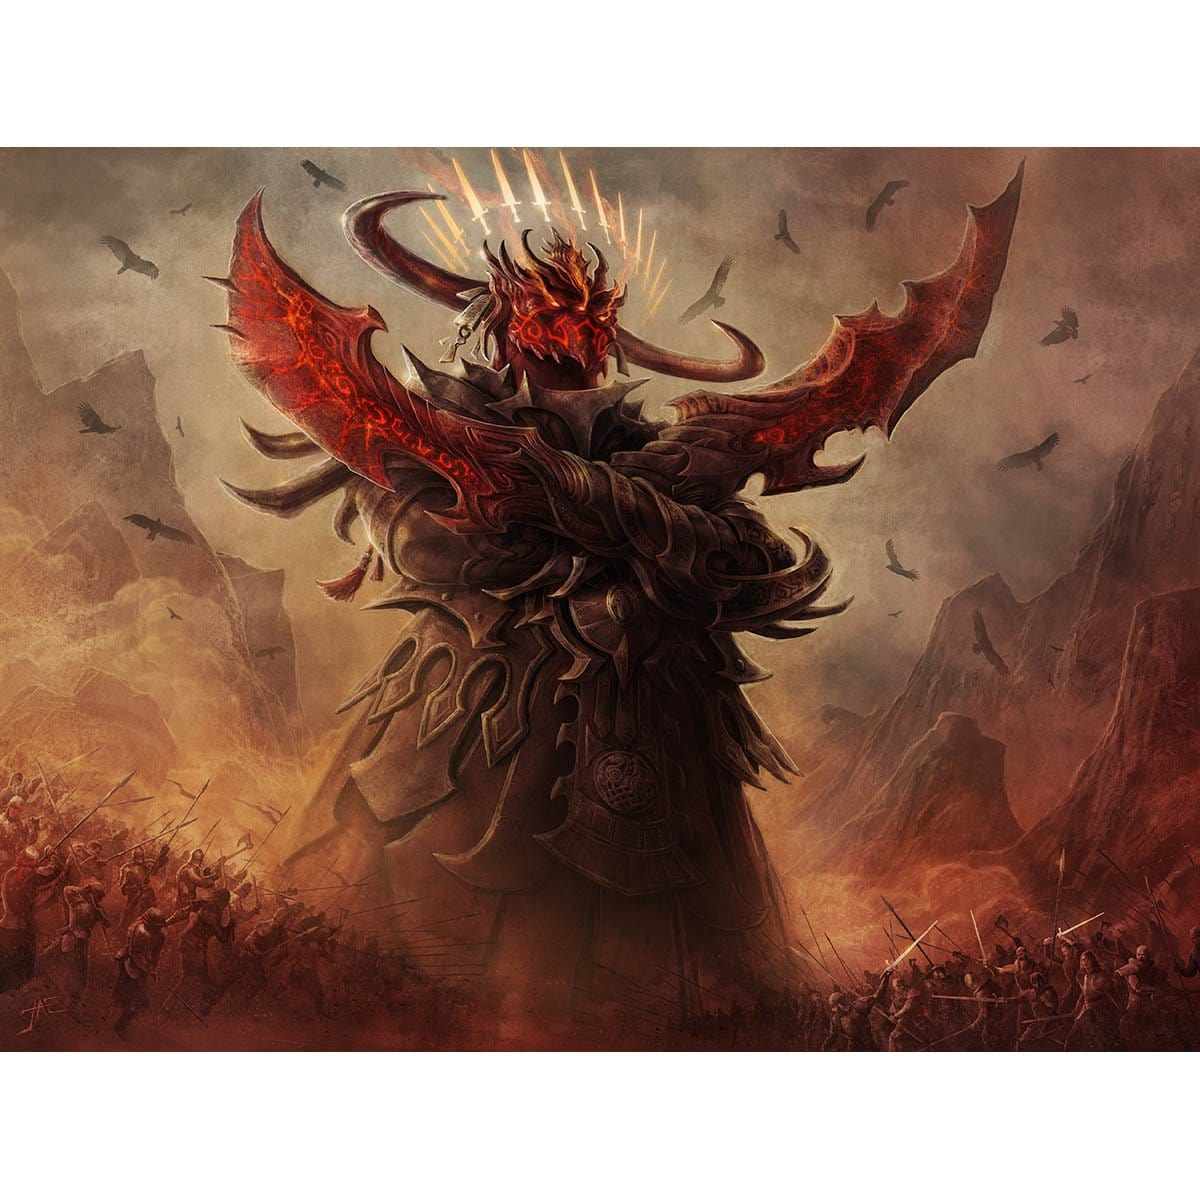 Avatar of Slaughter Print - Print - Original Magic Art - Accessories for Magic the Gathering and other card games